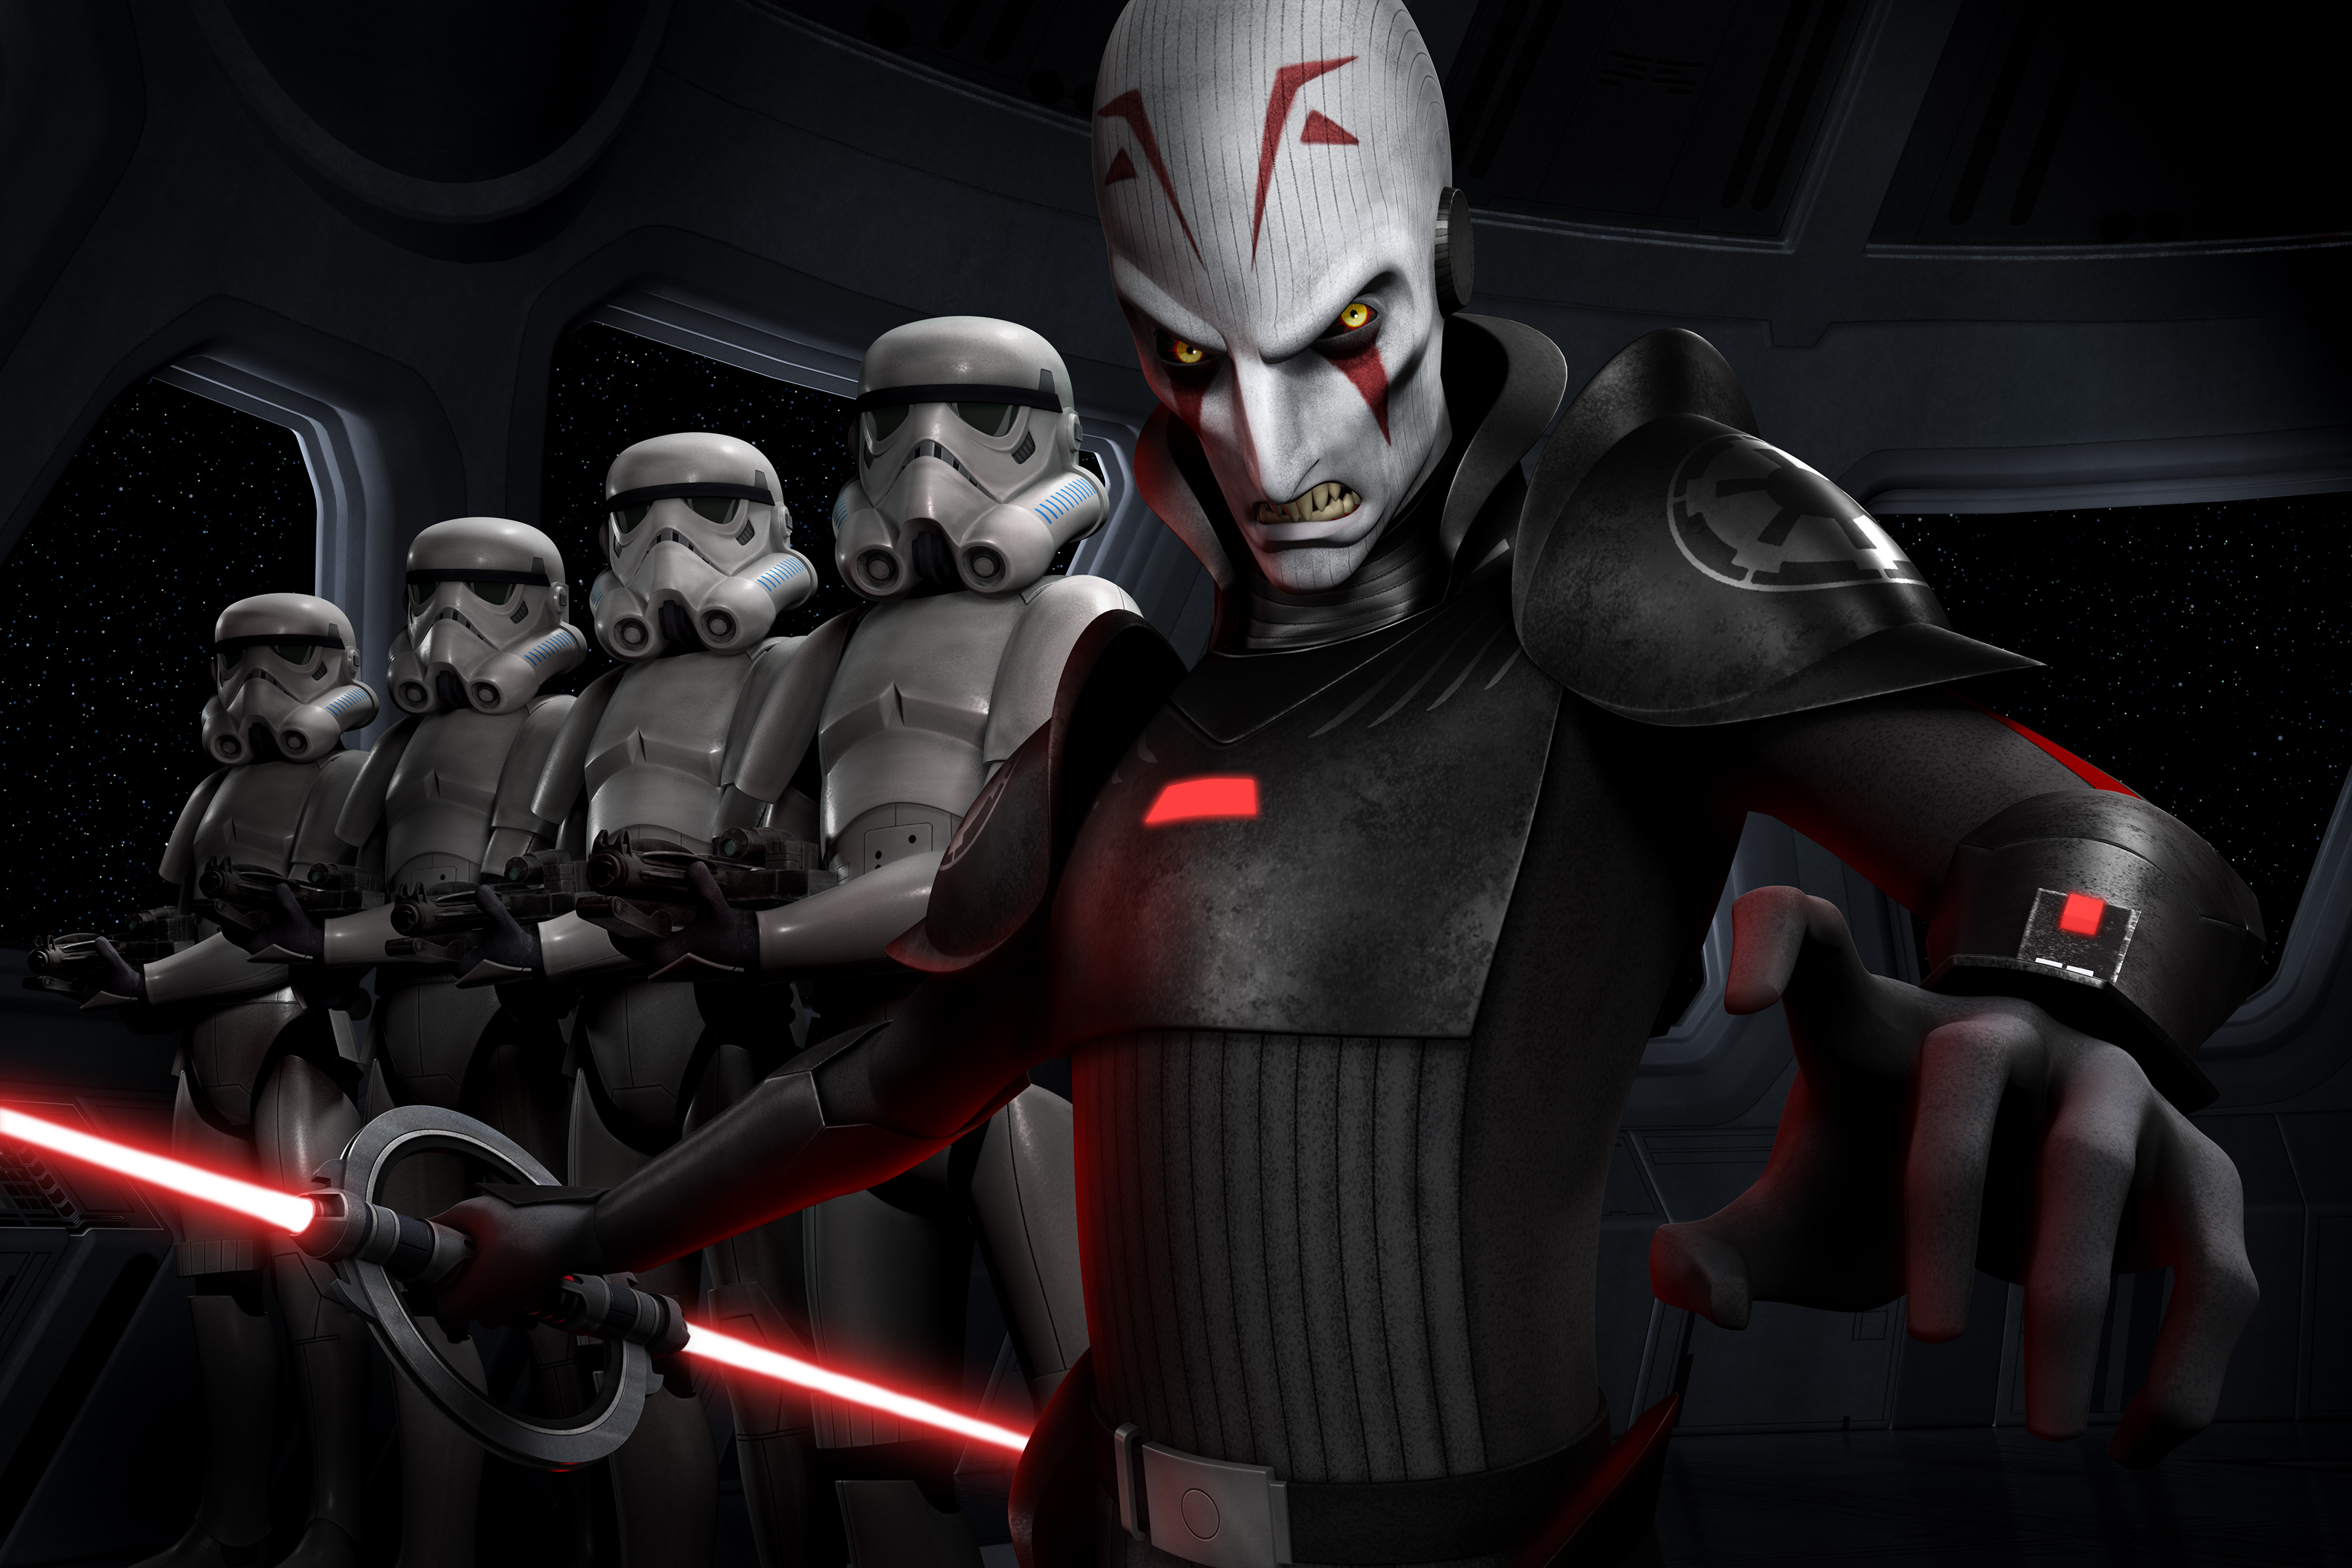 Star Wars Rebels Stormtrooper The Inquisitor 3600x2400